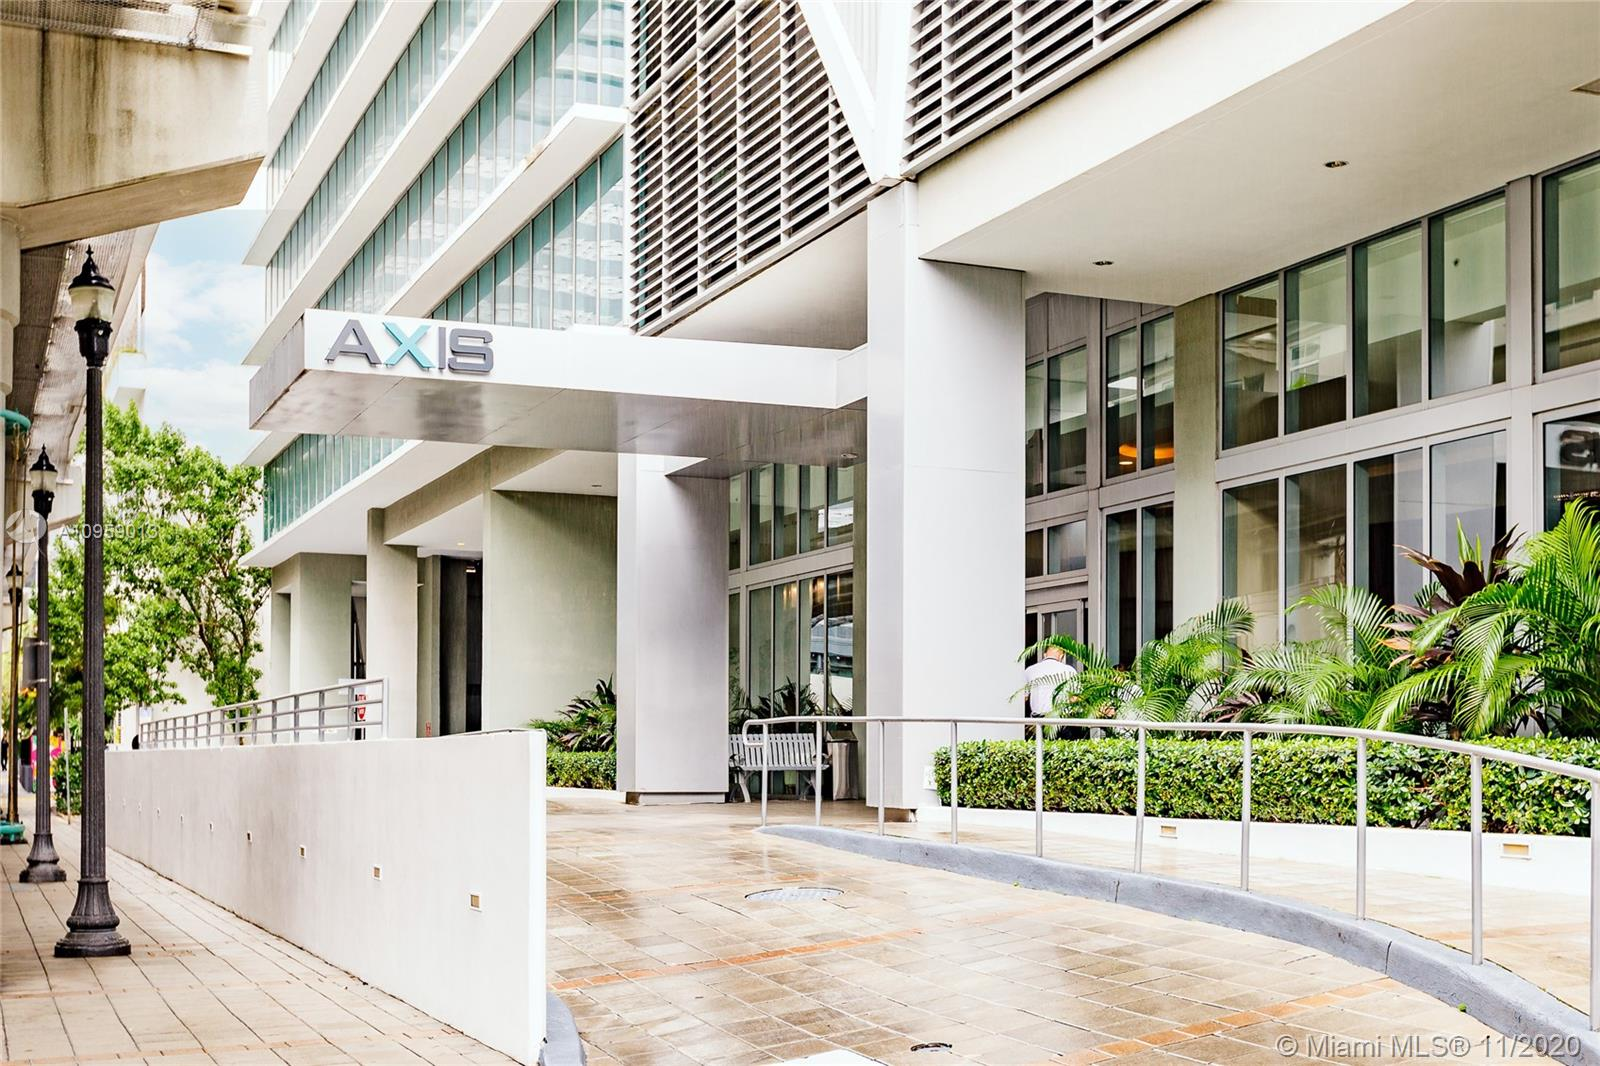 Axis on Brickell North Tower #3216-N - 1111 SW 1st Ave #3216-N, Miami, FL 33130